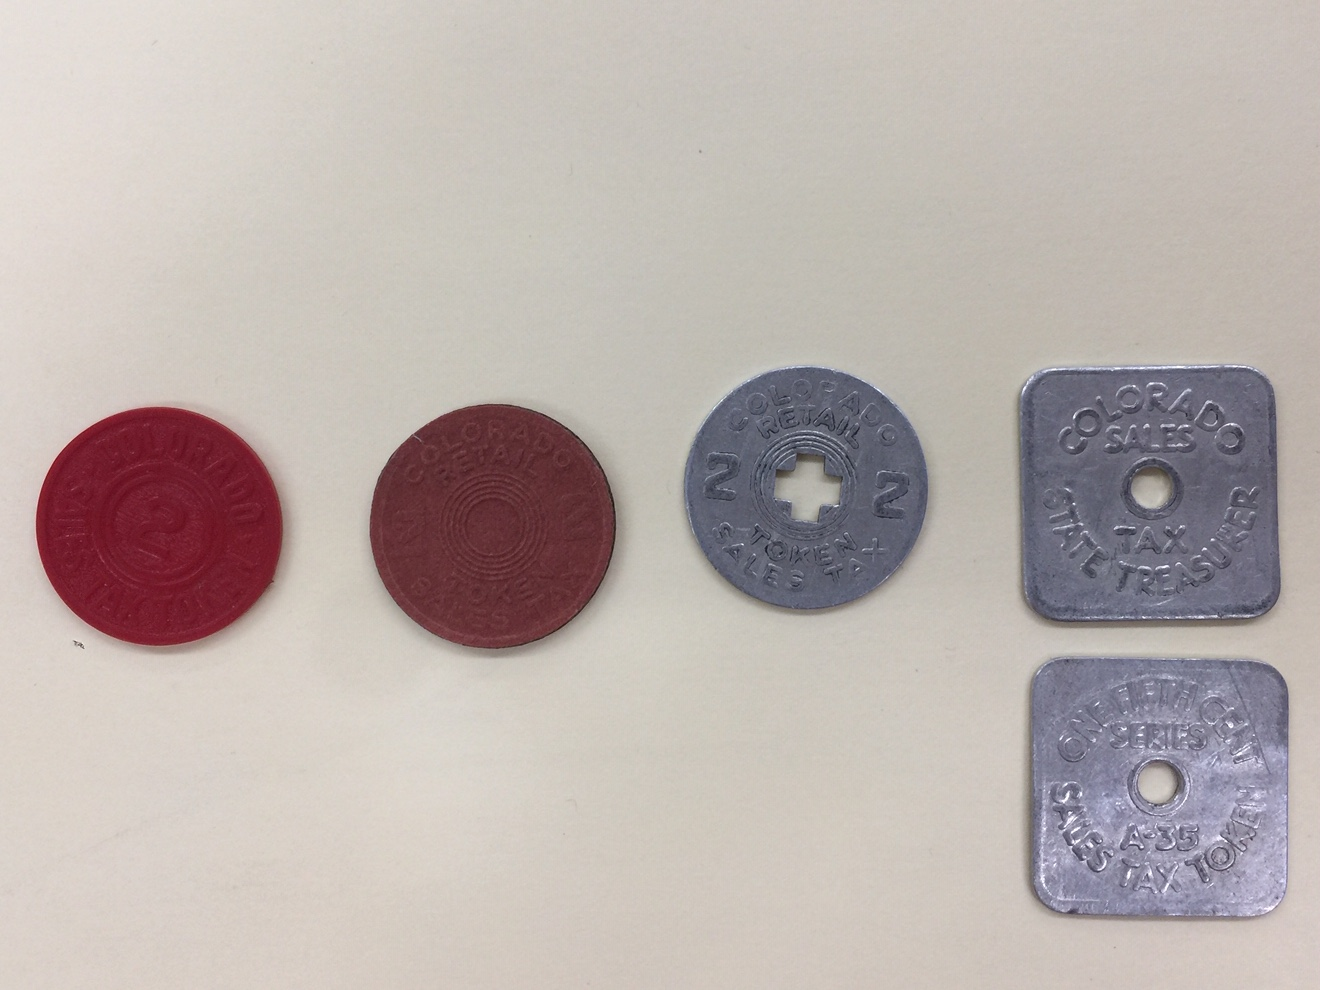 Colorado sales tax tokens, years unknown. Object IDs: 1974.010.1482-1486; Royal Gorge Regional Museum & History Center Collection